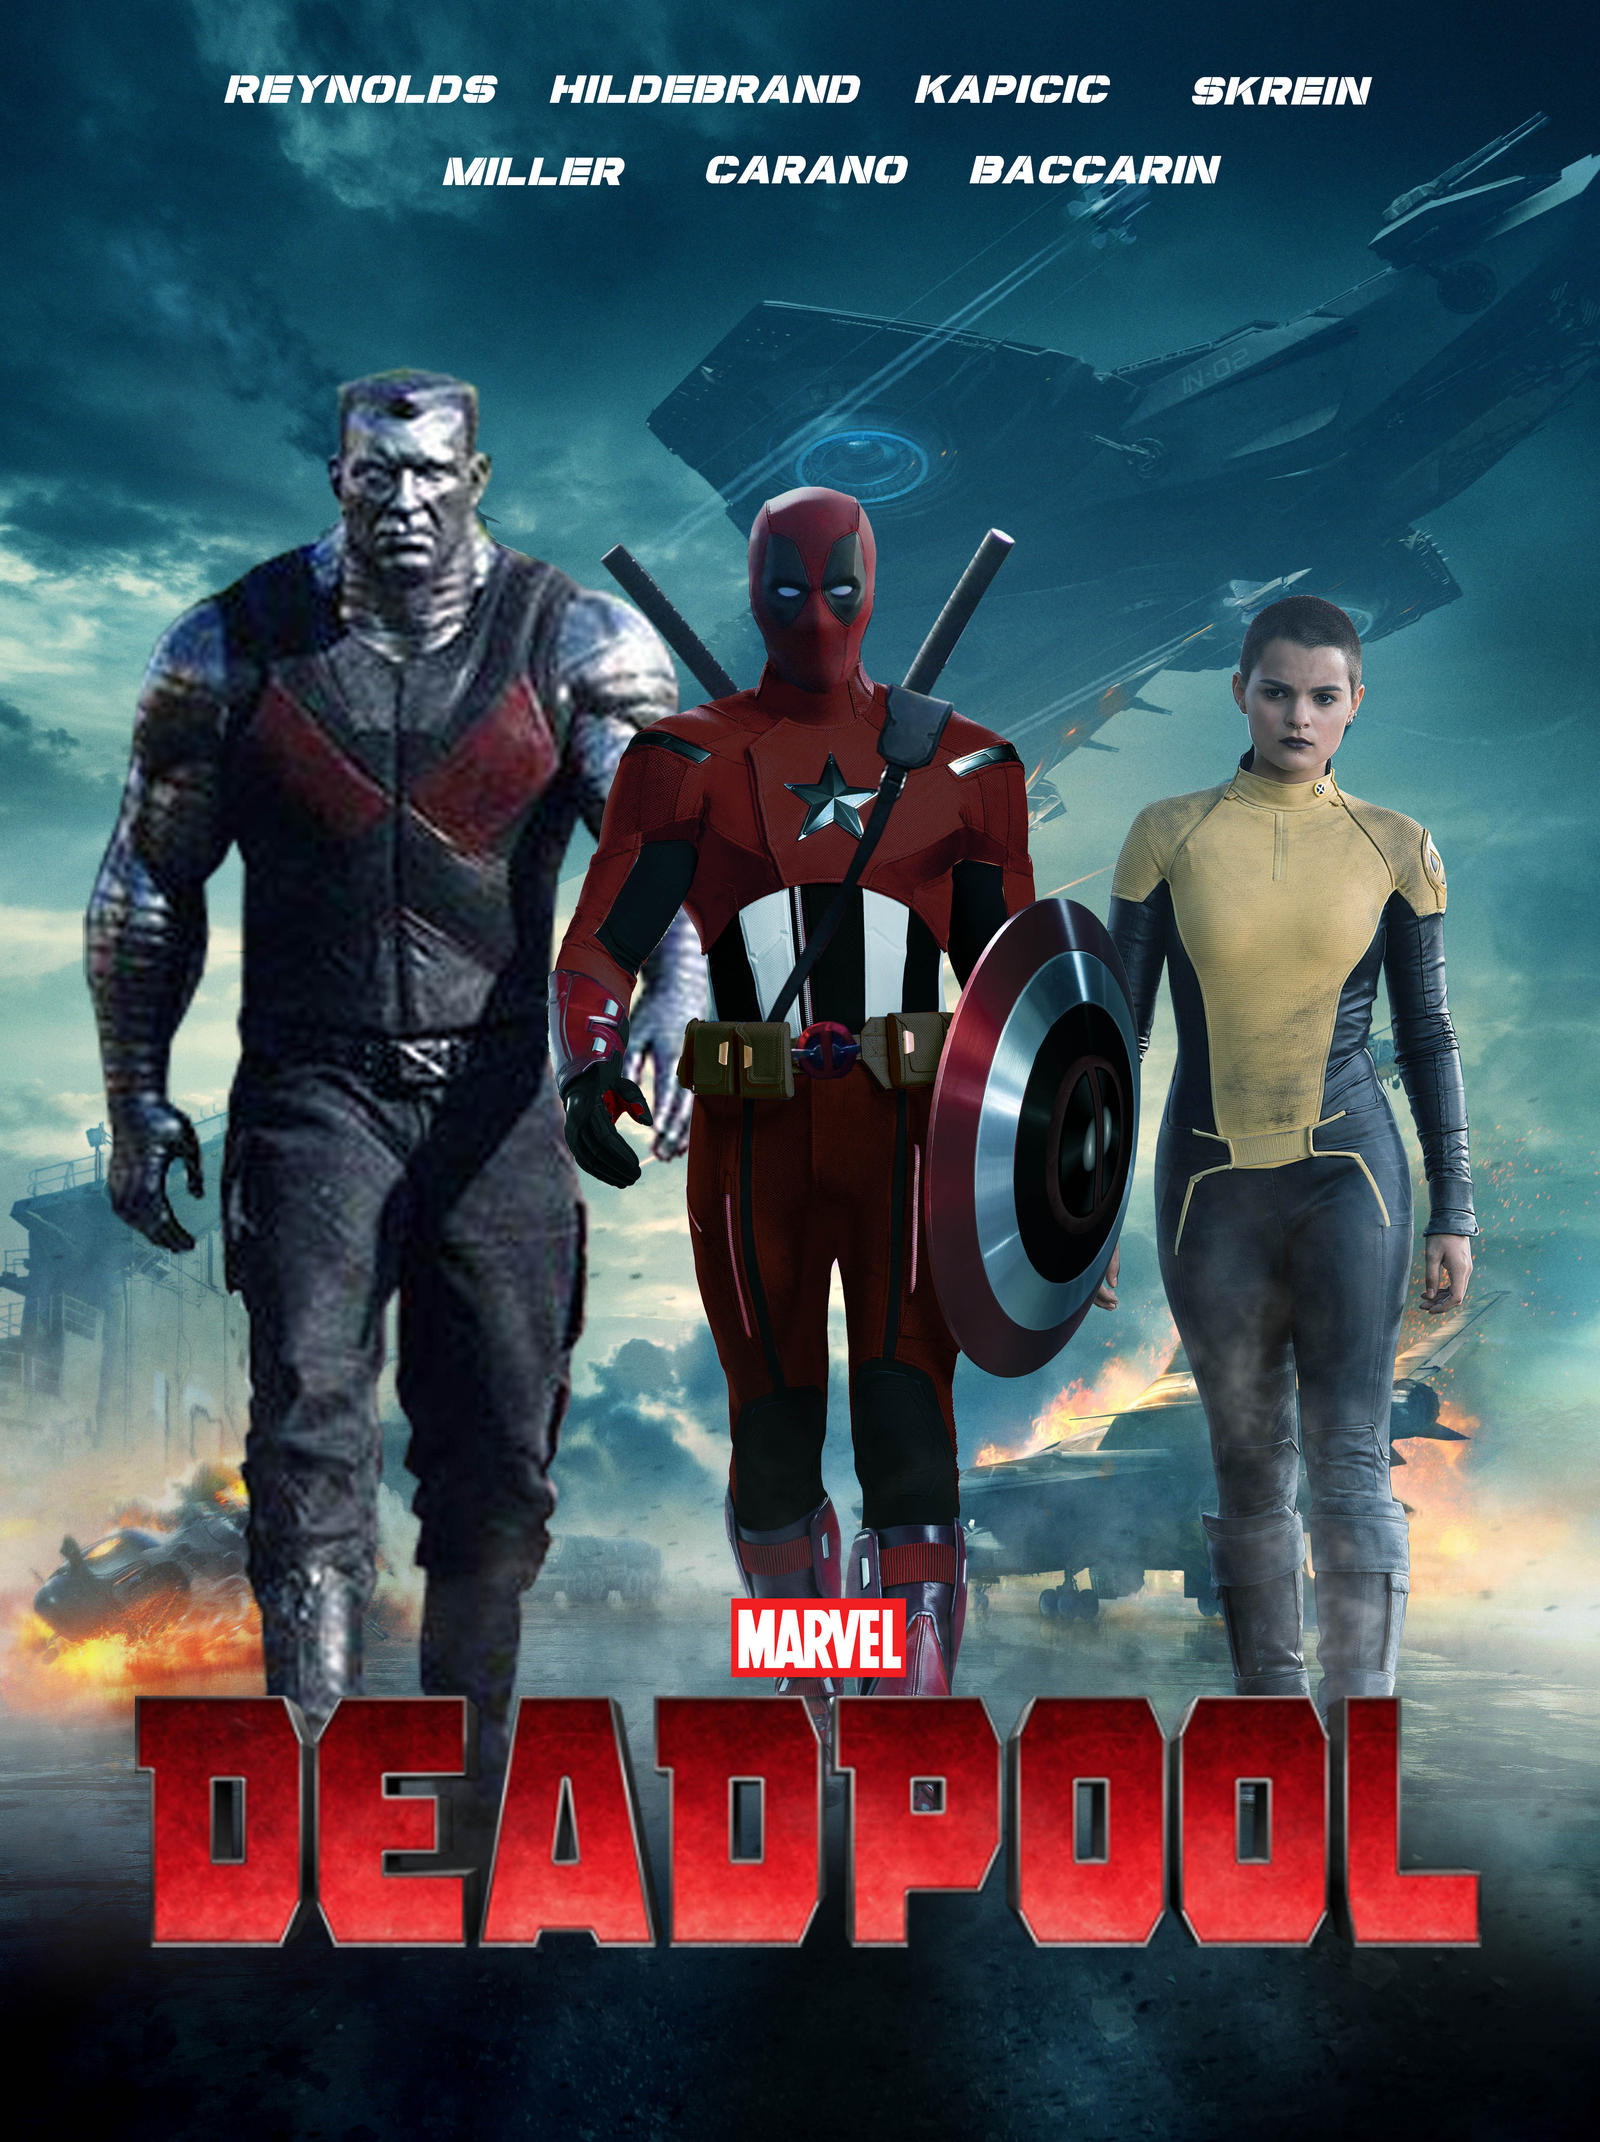 Captain Deadpool Poster by MarcellSalek-26 on DeviantArt